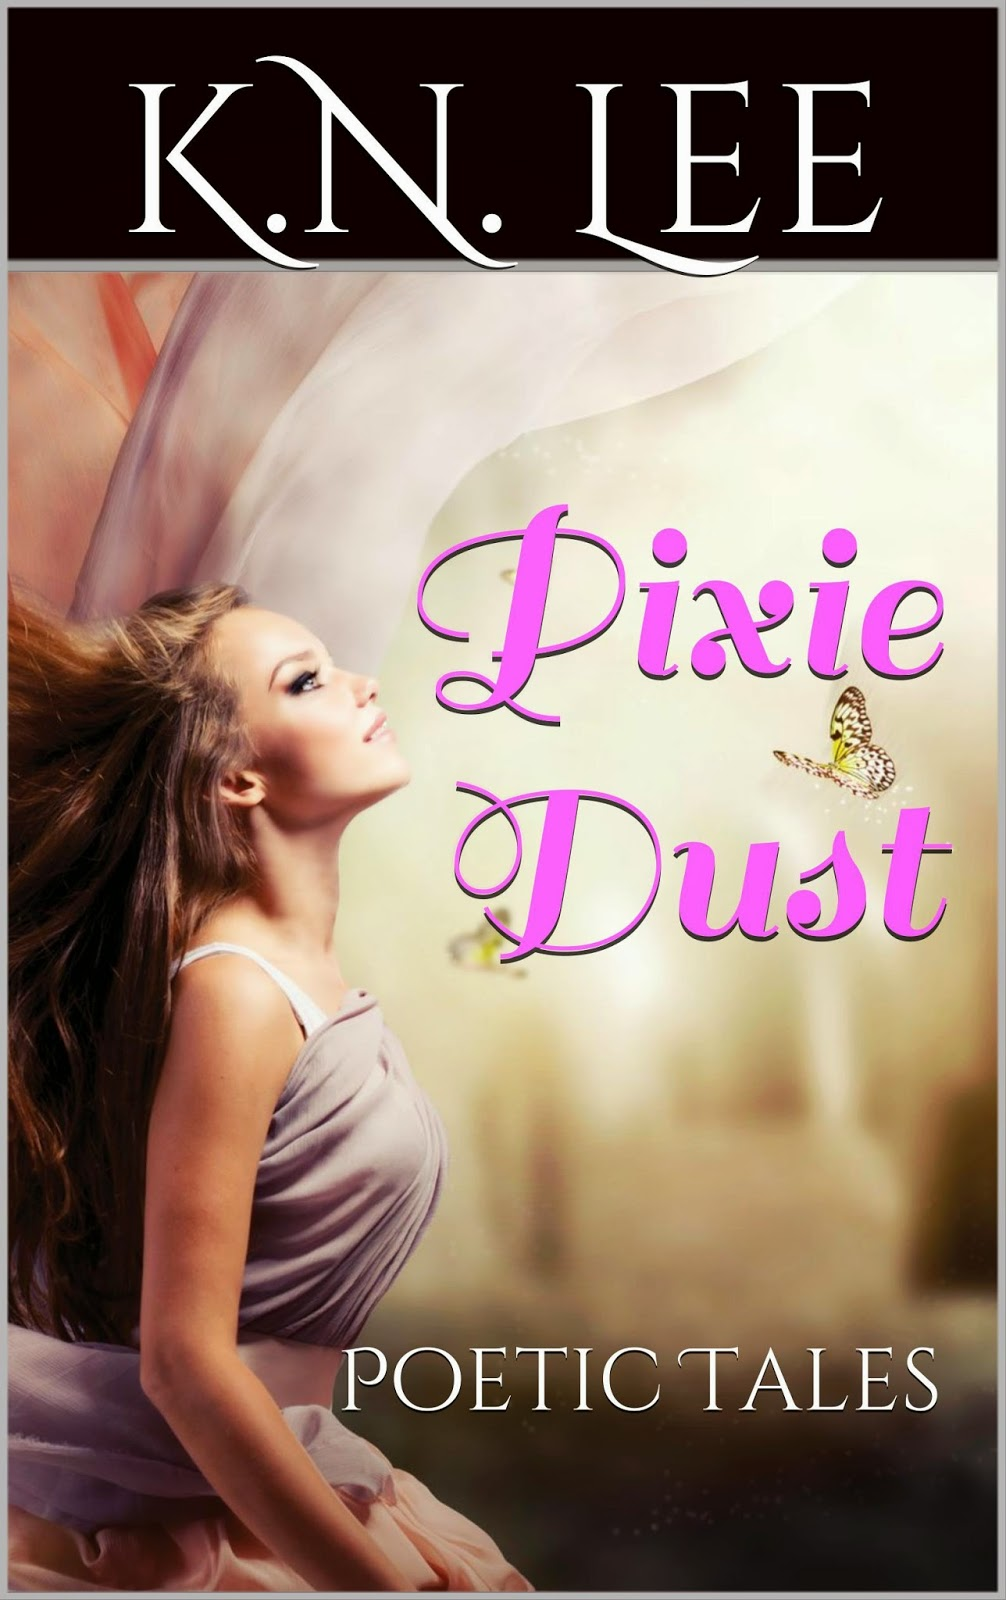 http://www.amazon.com/Pixie-Dust-Poetic-K-N-Lee-ebook/dp/B00LZ4CYDQ/ref=sr_1_1?ie=UTF8&qid=1405963897&sr=8-1&keywords=pixie+dust+K.N.+Lee